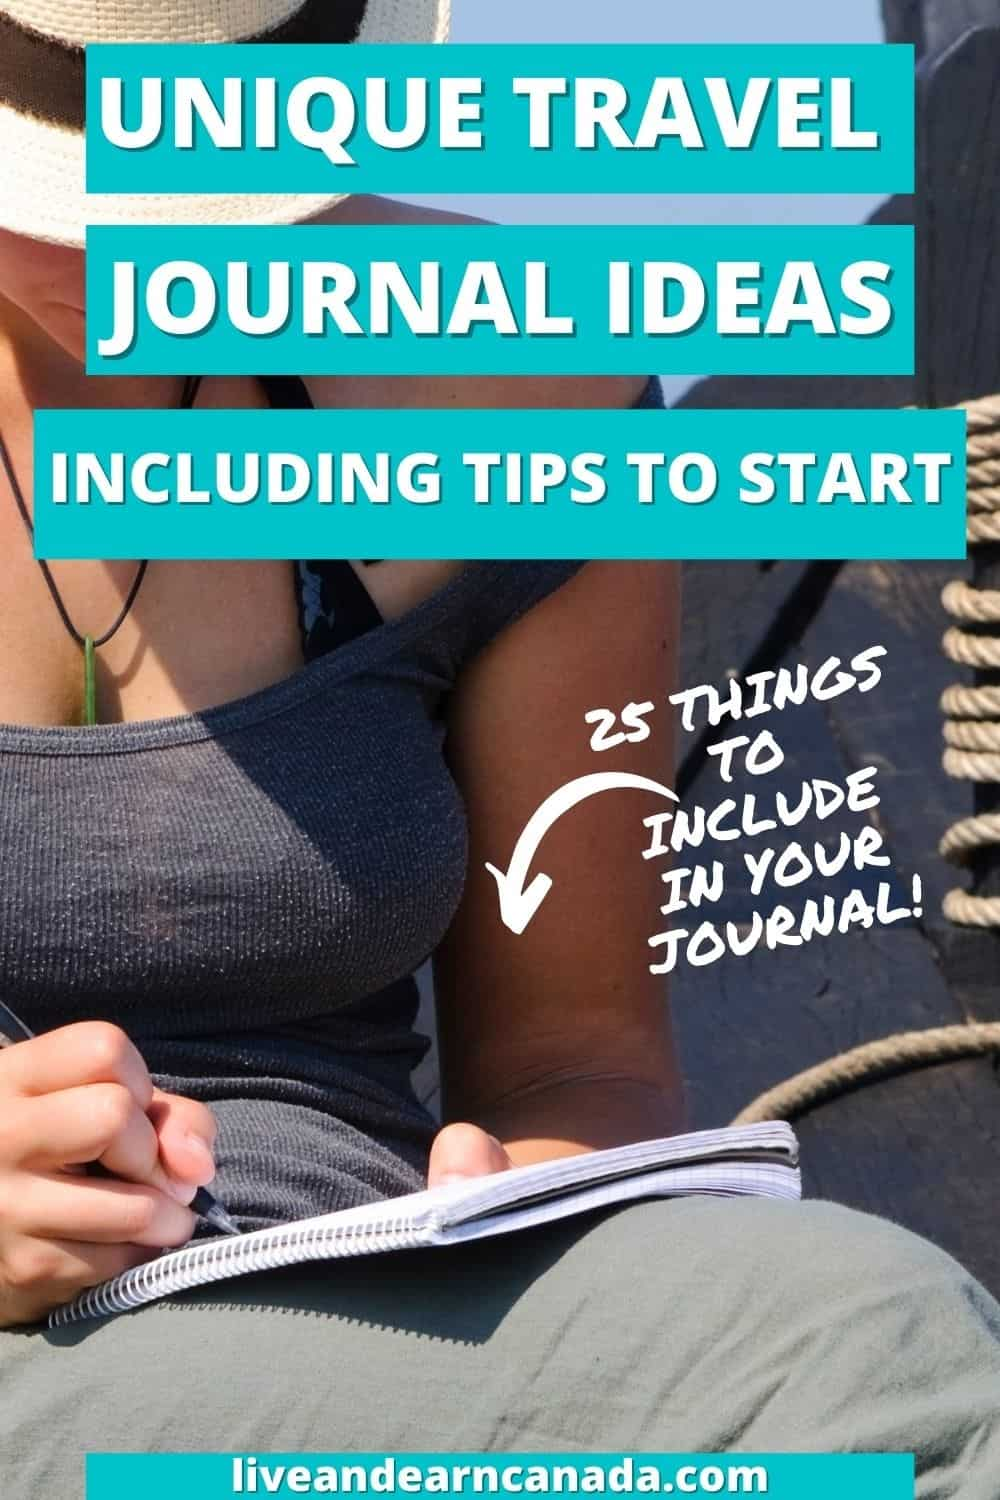 Easy Travel Bullet Journal Ideas To Plan Your Travels! Travel Journal Ideas: 25 Things to Include in Your Travel Journal Do you want to start documenting your travels? Here are some travel journal ideas to help get you started along with 25 things to include in your journal.